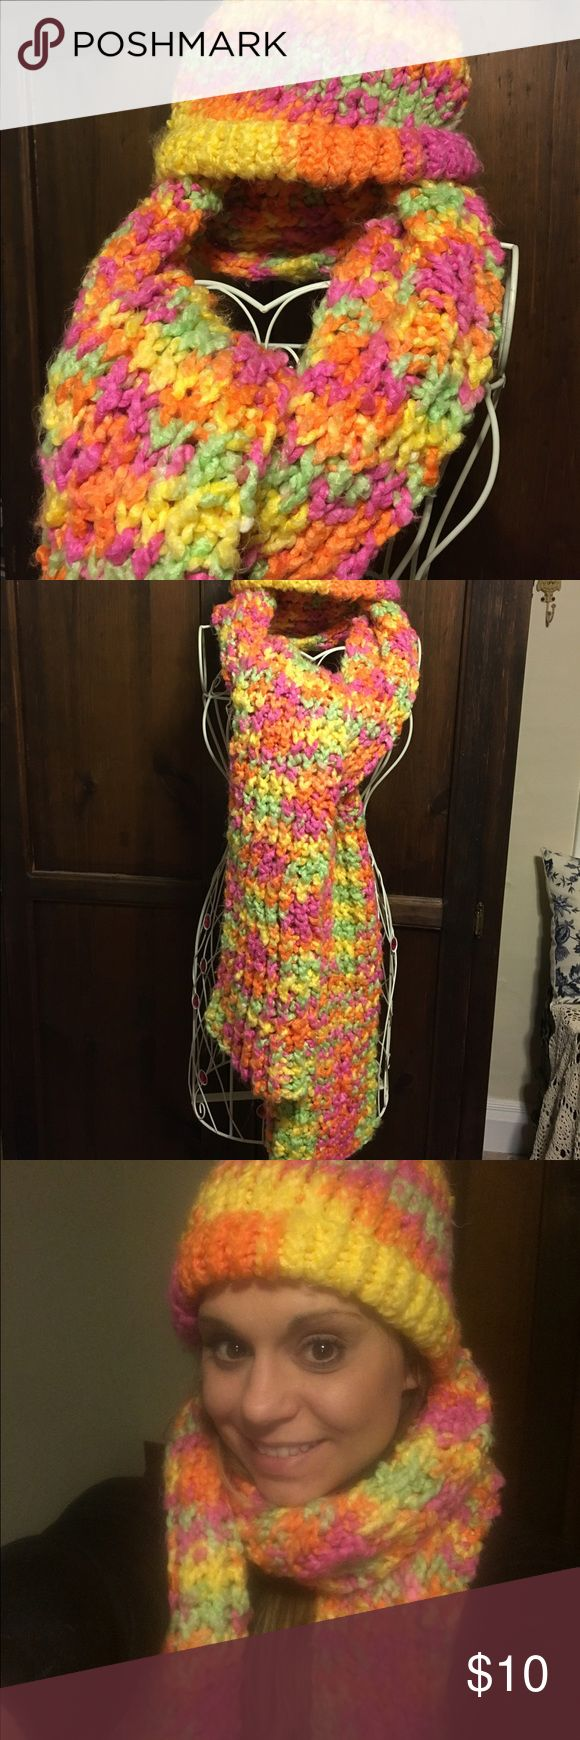 Hand knitted Bright colored scarf set Bright multi colored scarf & hat set. Hand knitted, super soft & cozy. Bright pink, yellow, orange & green throughout. Accessories Scarves & Wraps